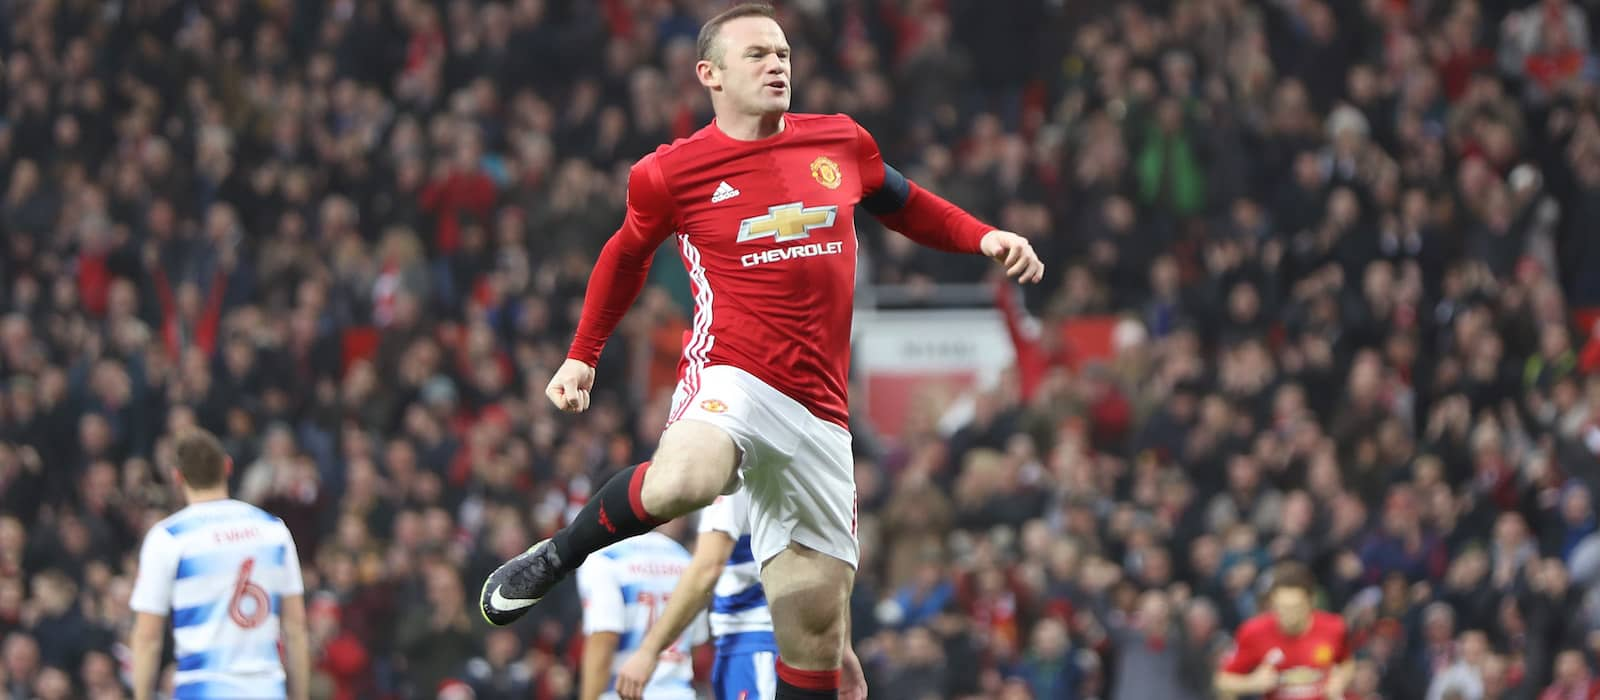 Paul Scholes expects Wayne Rooney to leave Manchester United